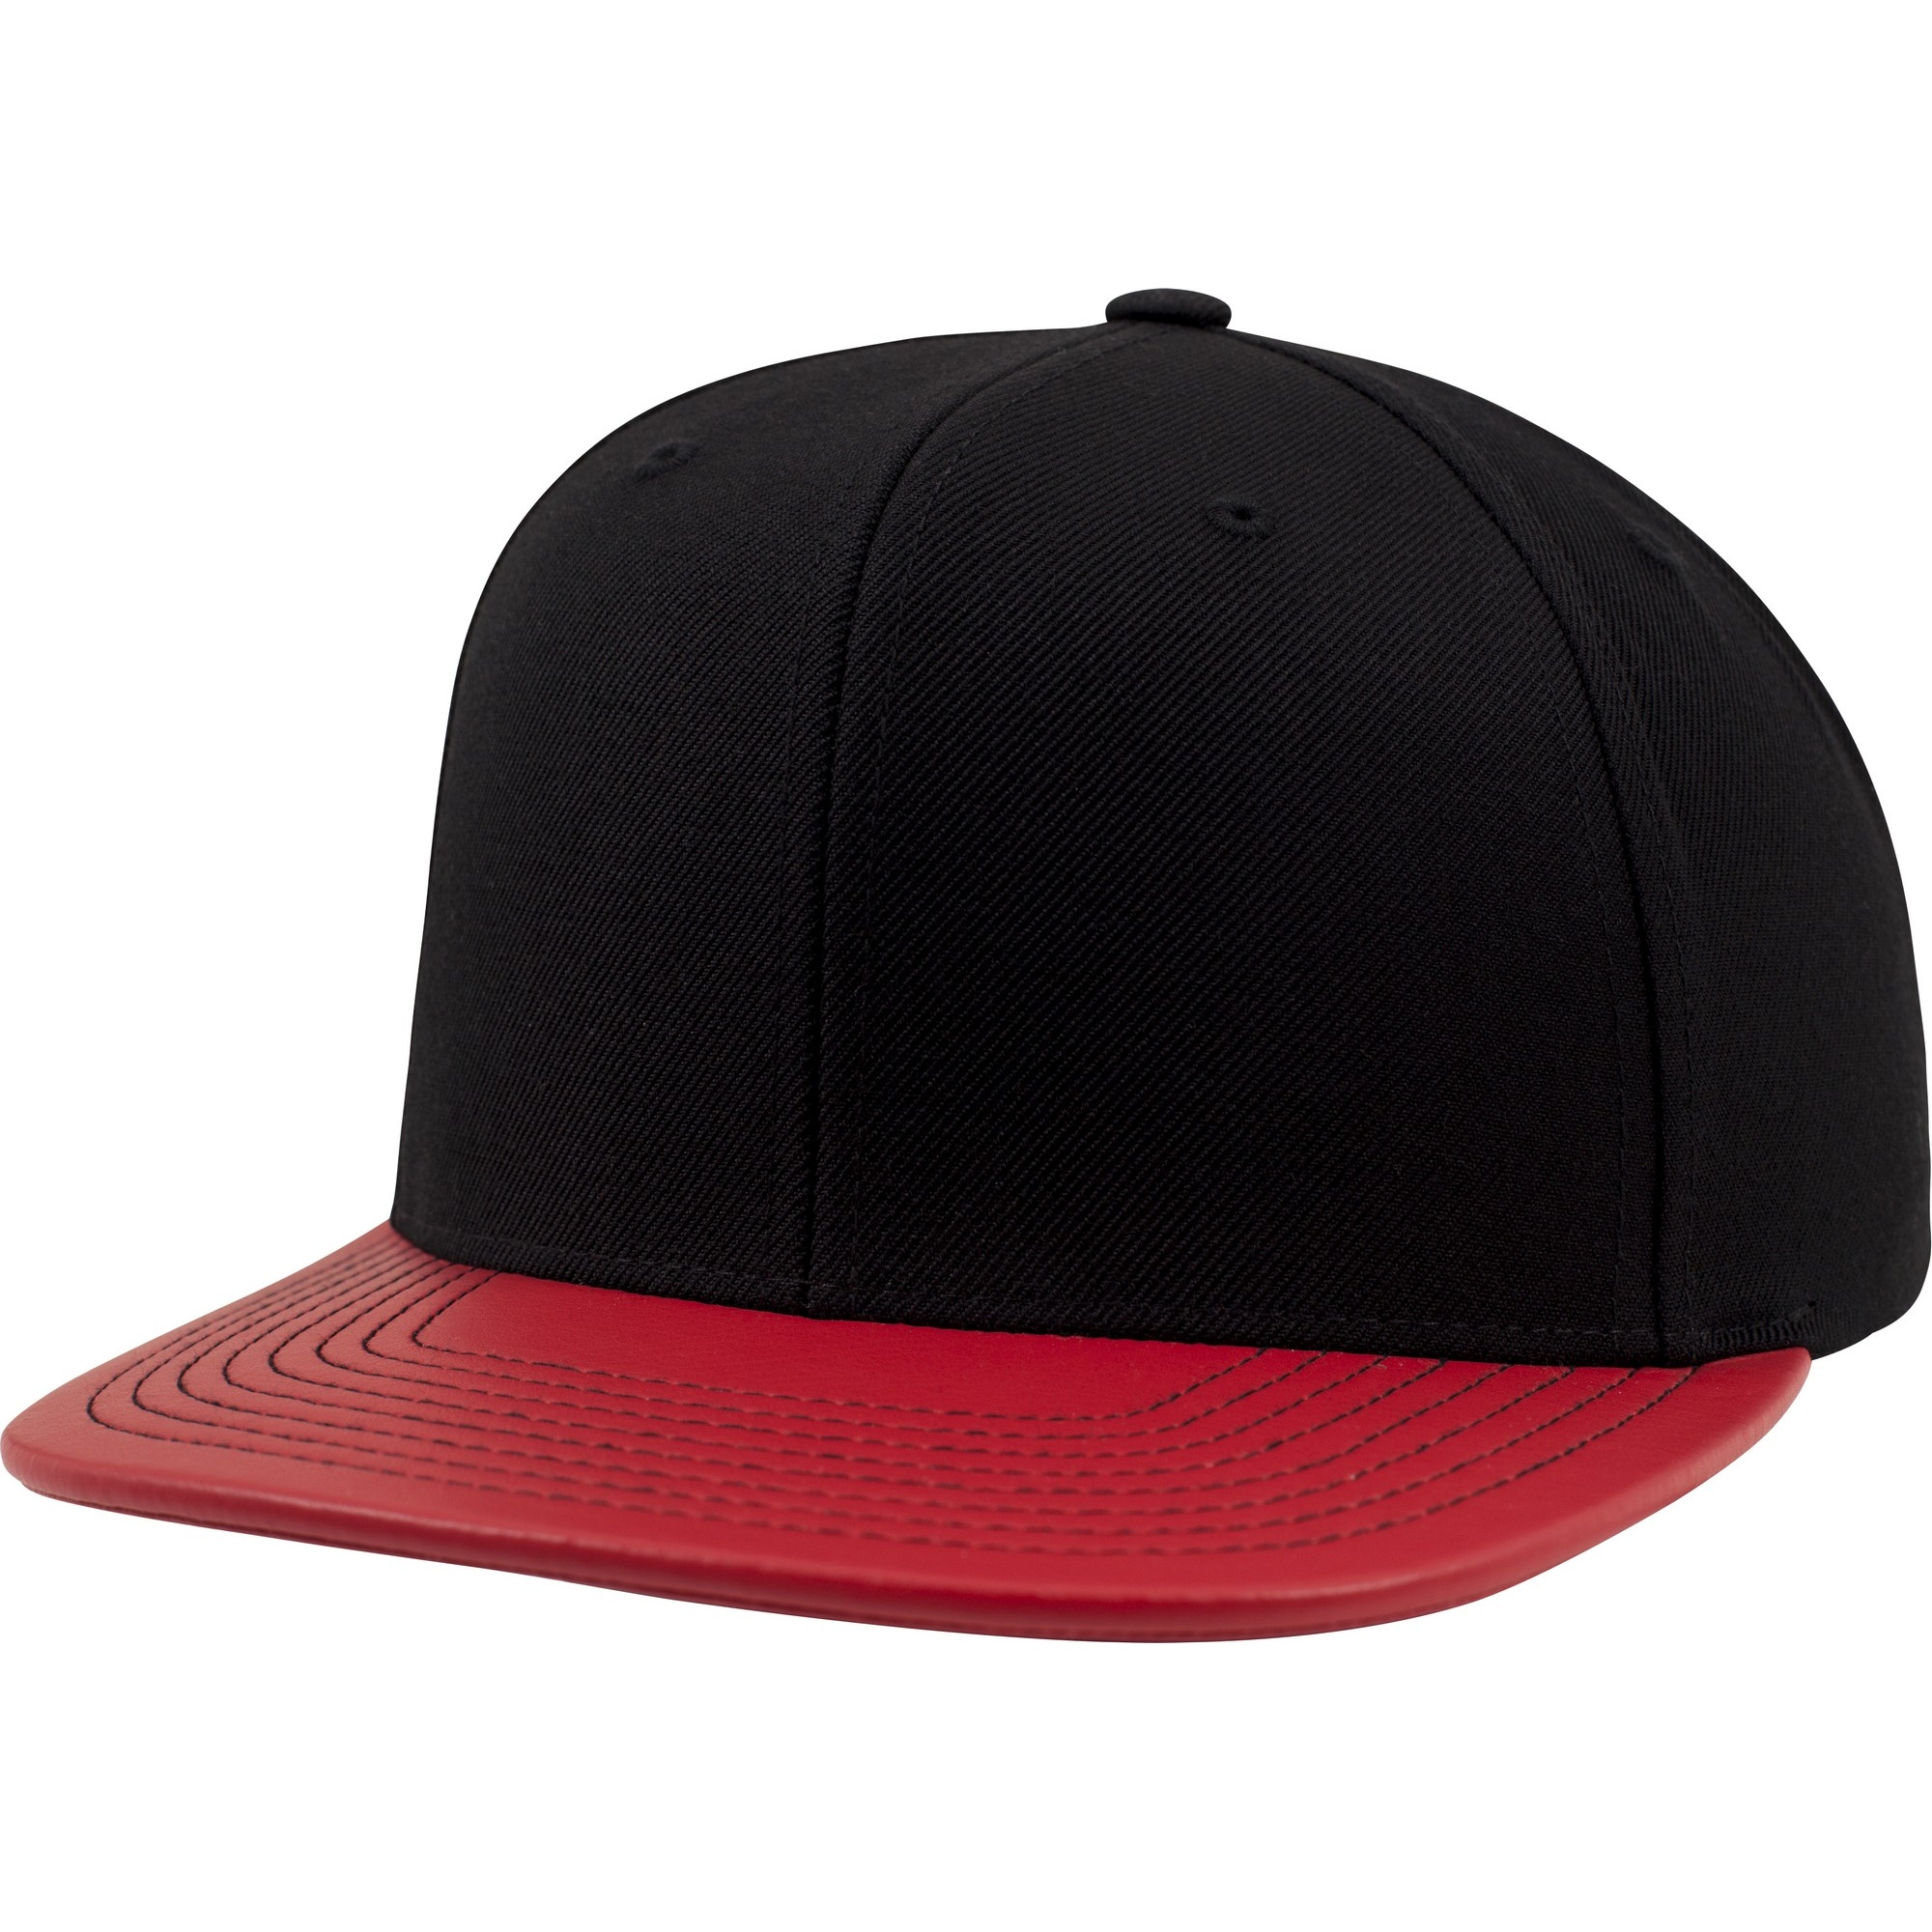 c8624c454 Flexfit Metallic Visor Snapback Cap Utrw5122 2 Red. About this product.  Picture 1 of 2; Picture 2 of 2